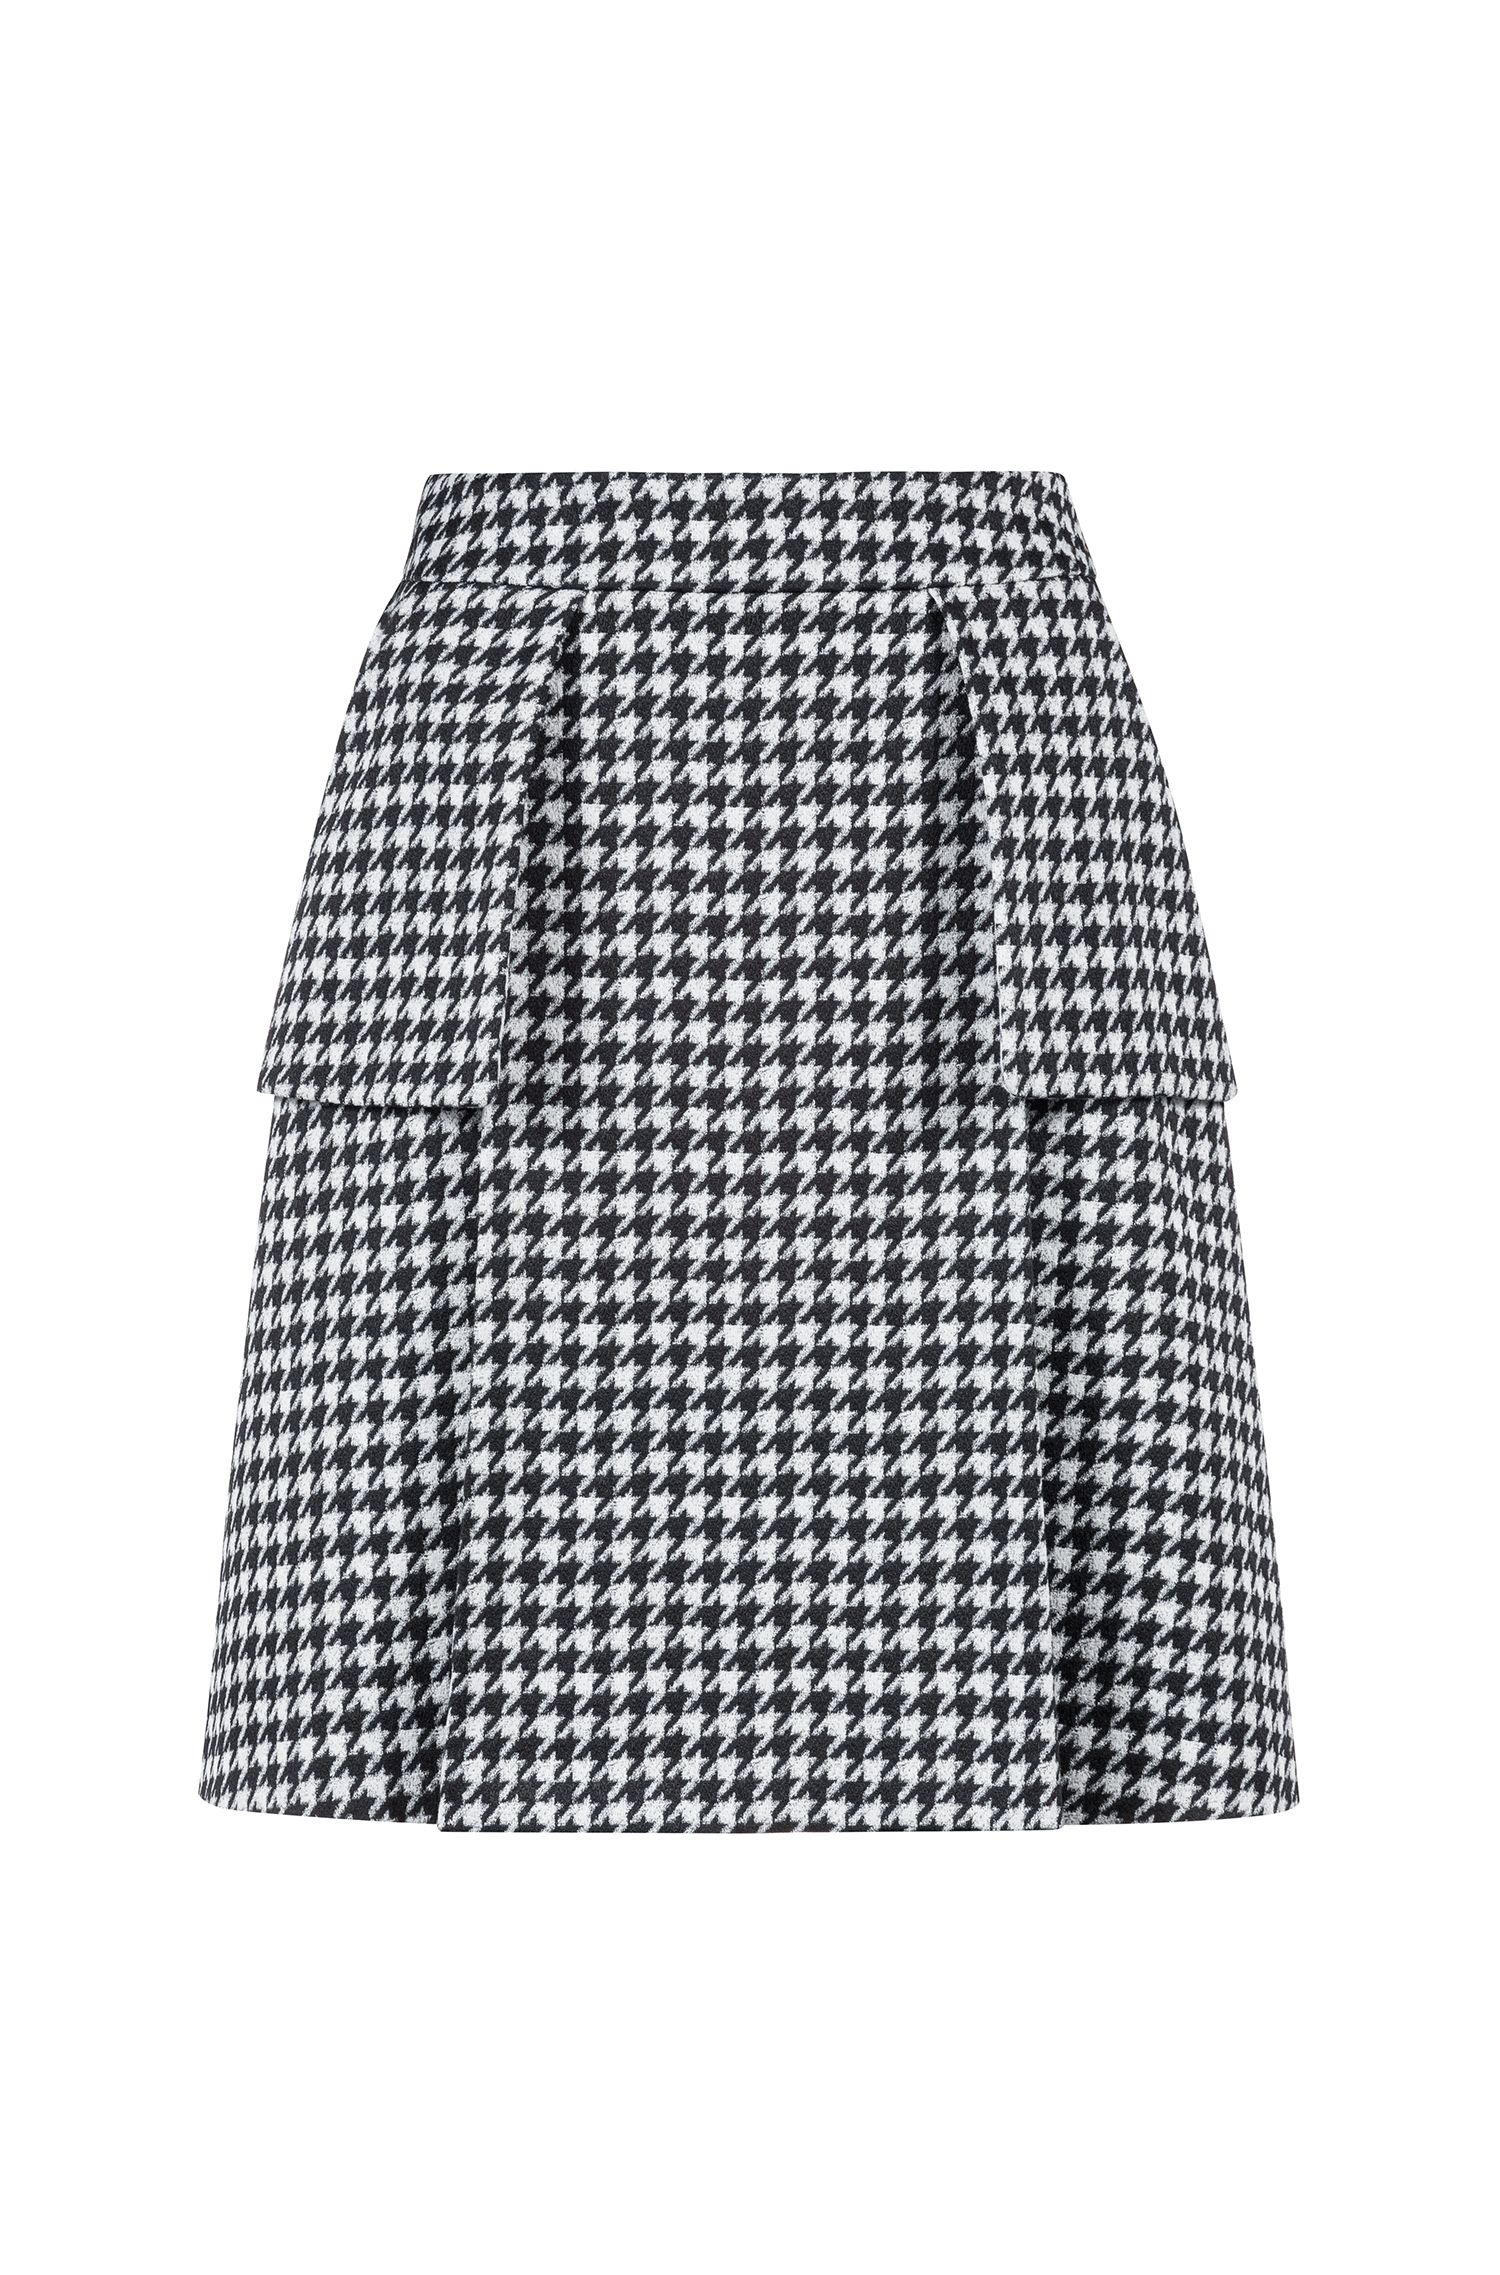 Pleated miniskirt in a houndstooth check with attached pockets, Patterned